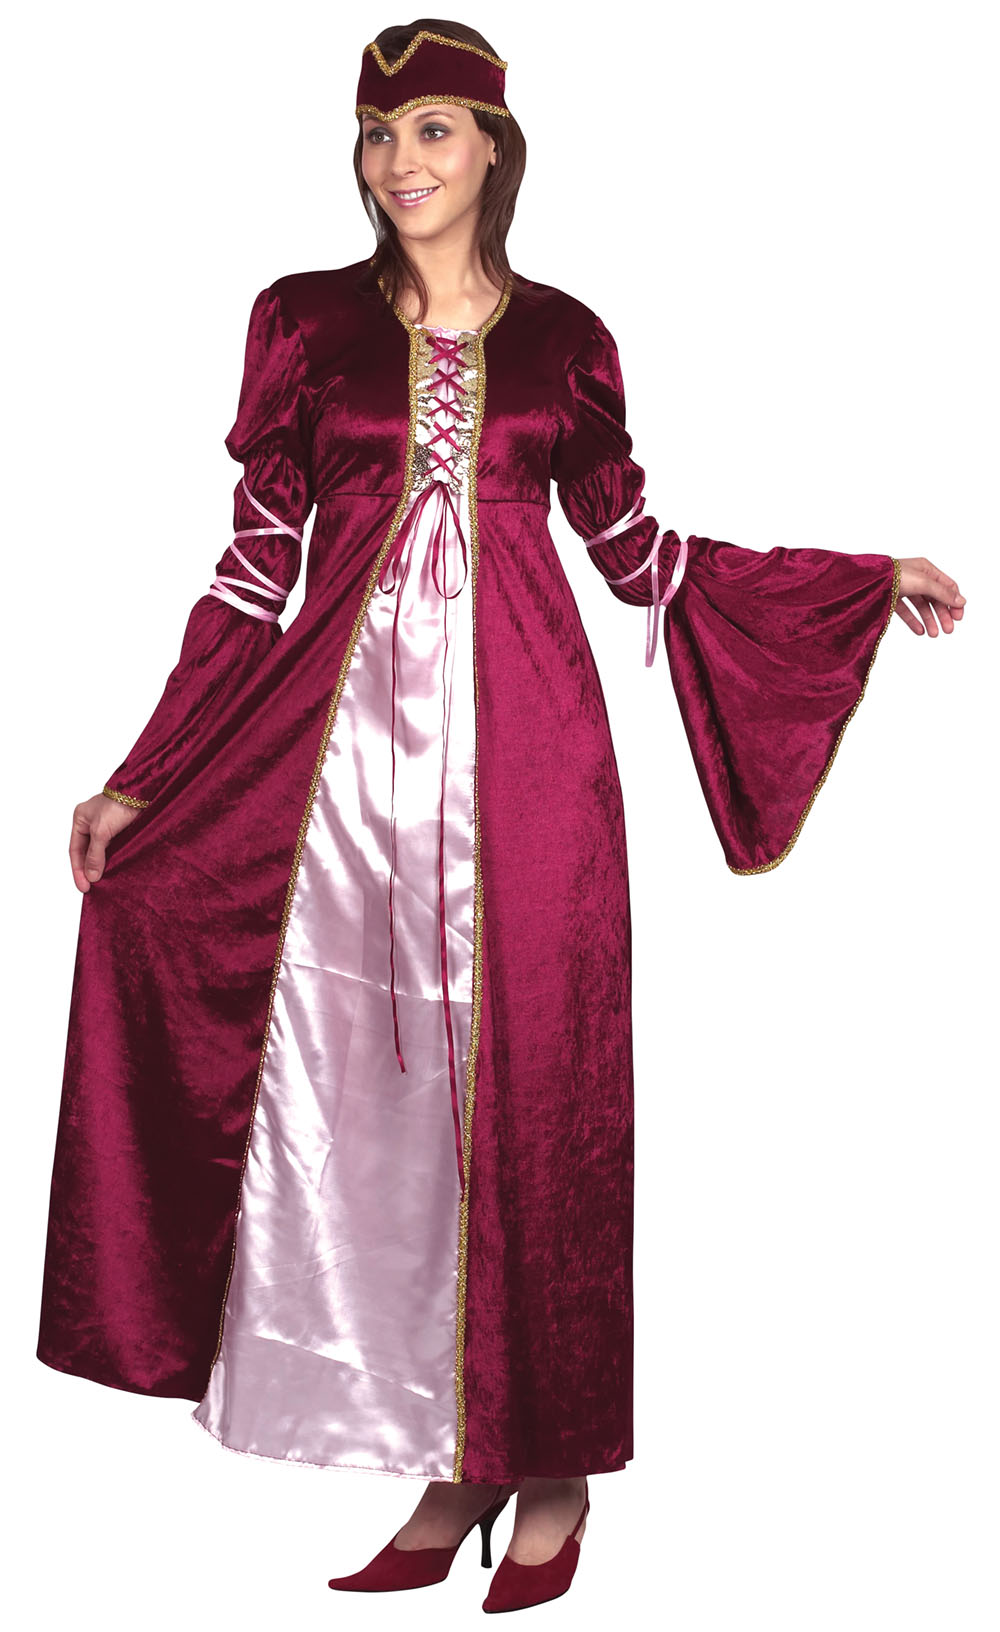 Ladies Renaissance Princess Fancy Dress Costume Lady Medieval Dame UK 10-14